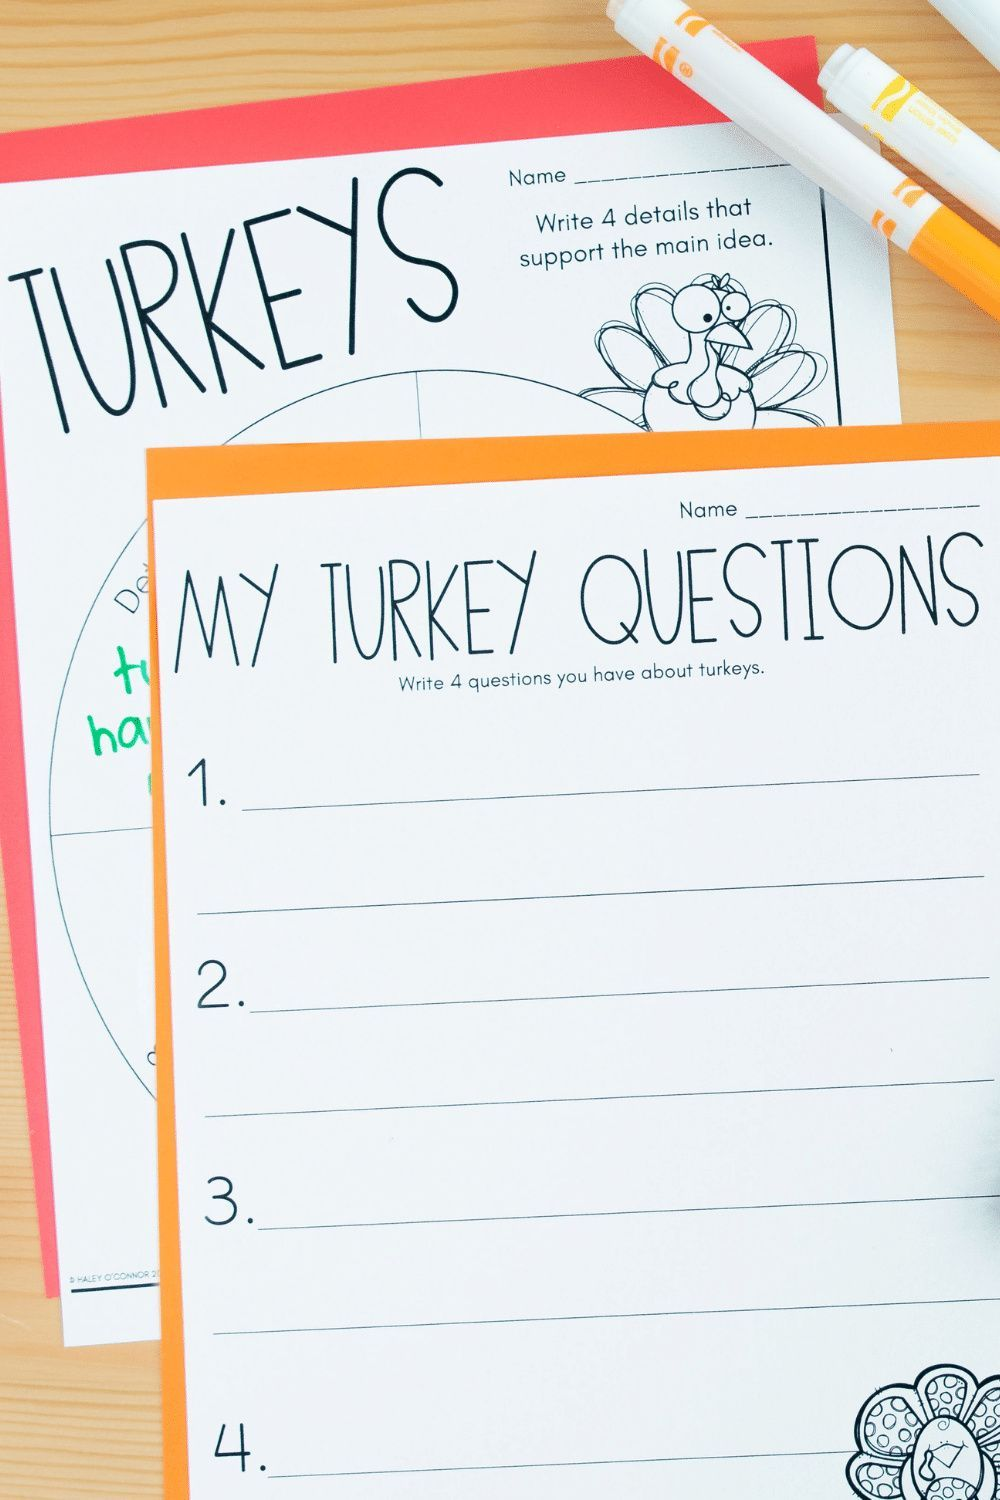 Turkey Activities Worksheets And Printables For Thanksgiving Fall And The Holidays Fun Writing Activities Teaching Writing Writing Printables [ 1500 x 1000 Pixel ]